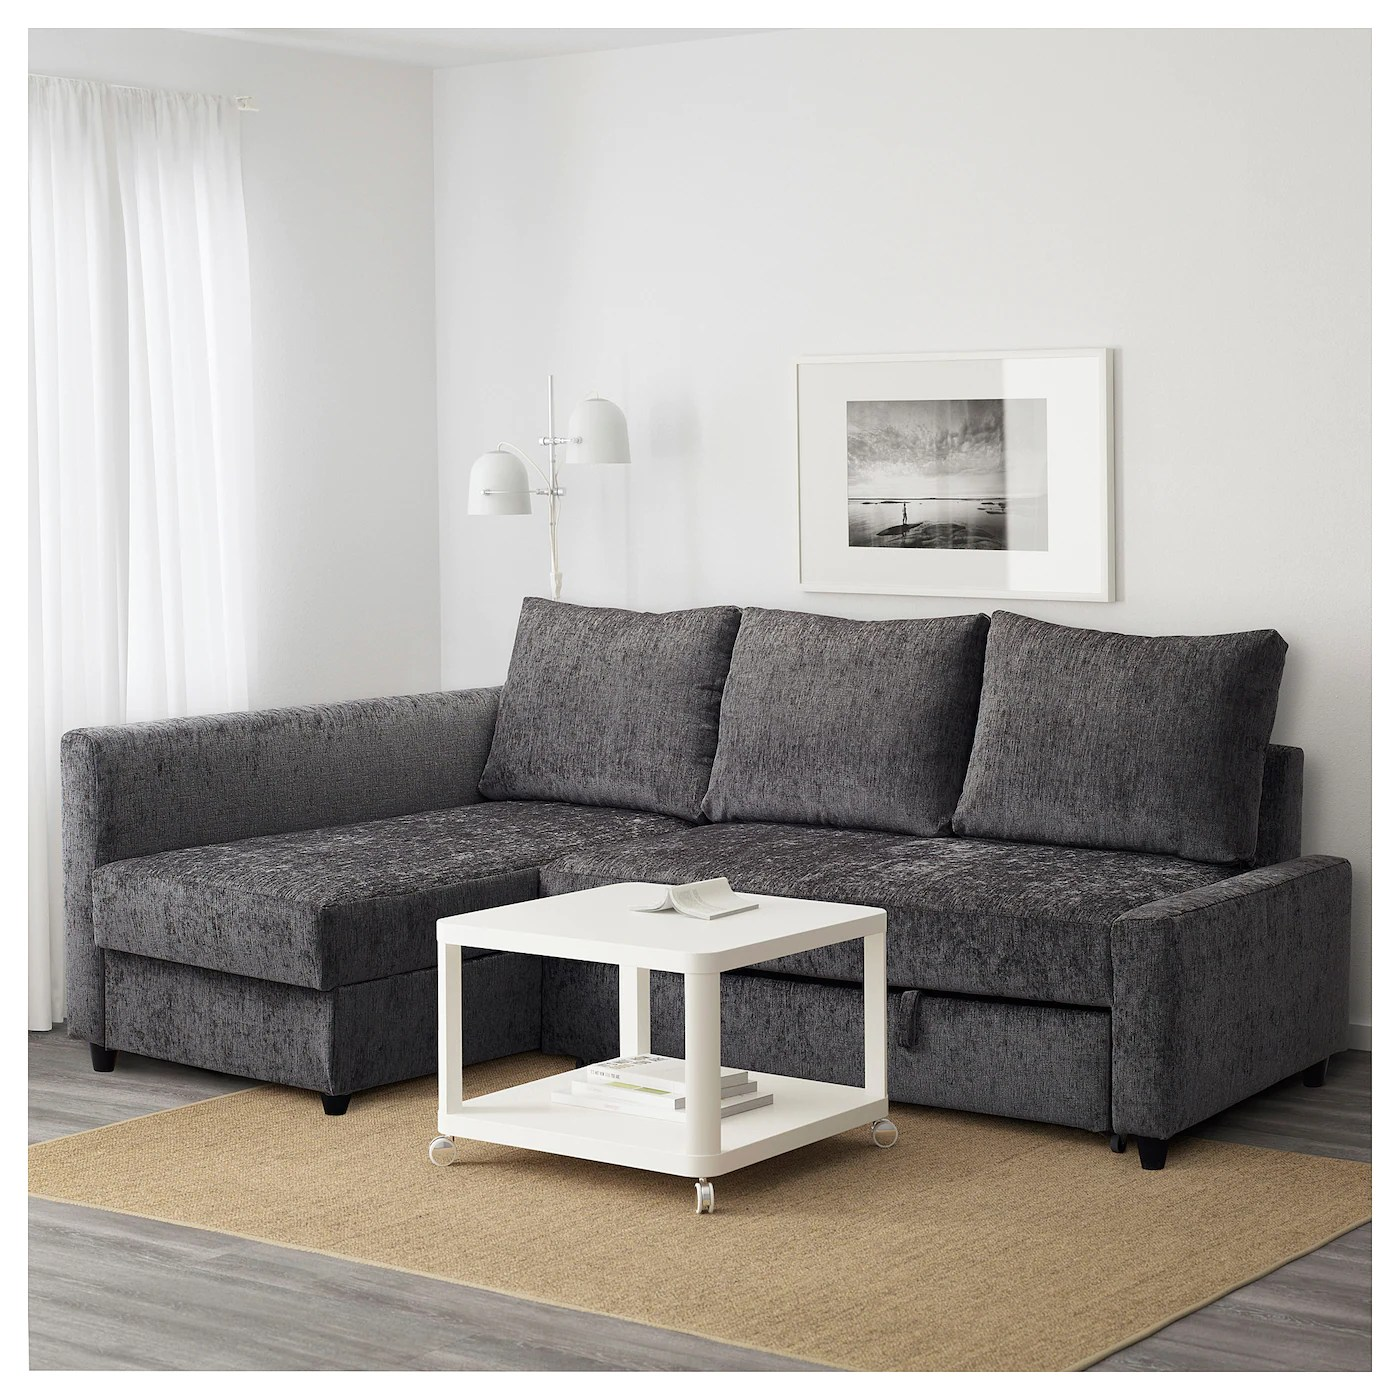 Bettsofa Ikea Friheten Friheten Corner Sofa Bed With Storage Dark Grey